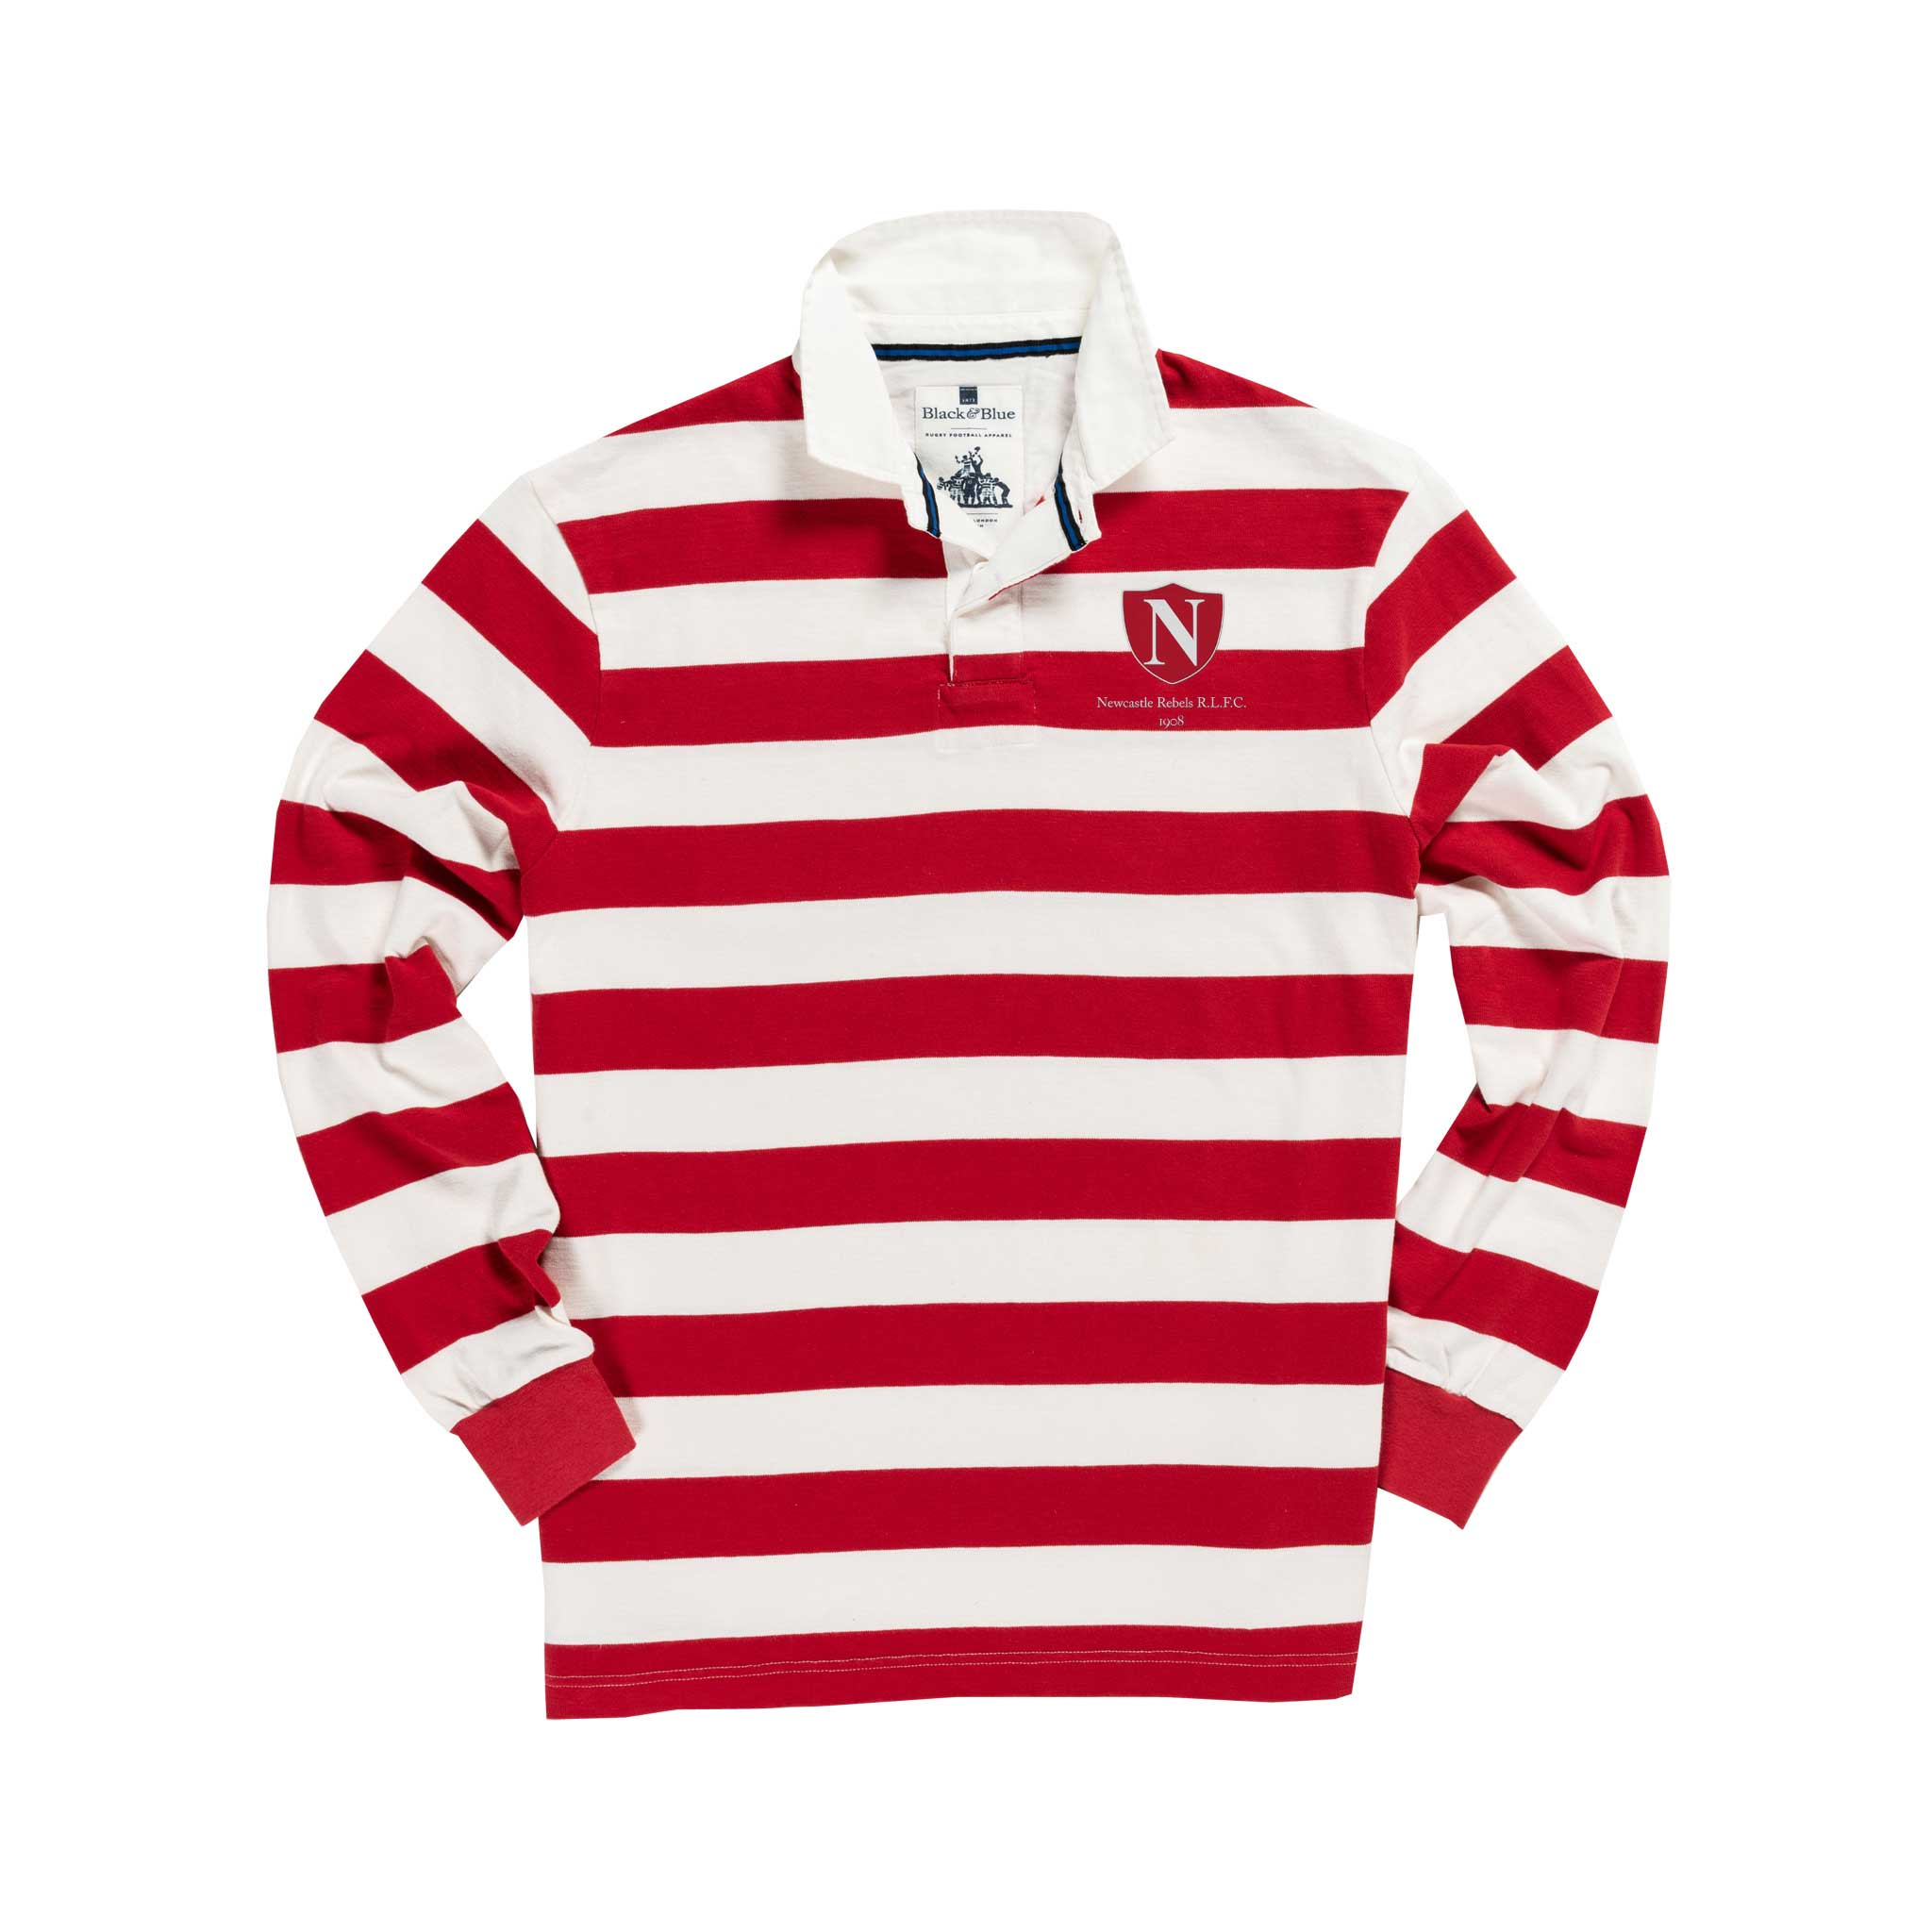 Newcastle Rebels 1908 rugby Shirt_Front